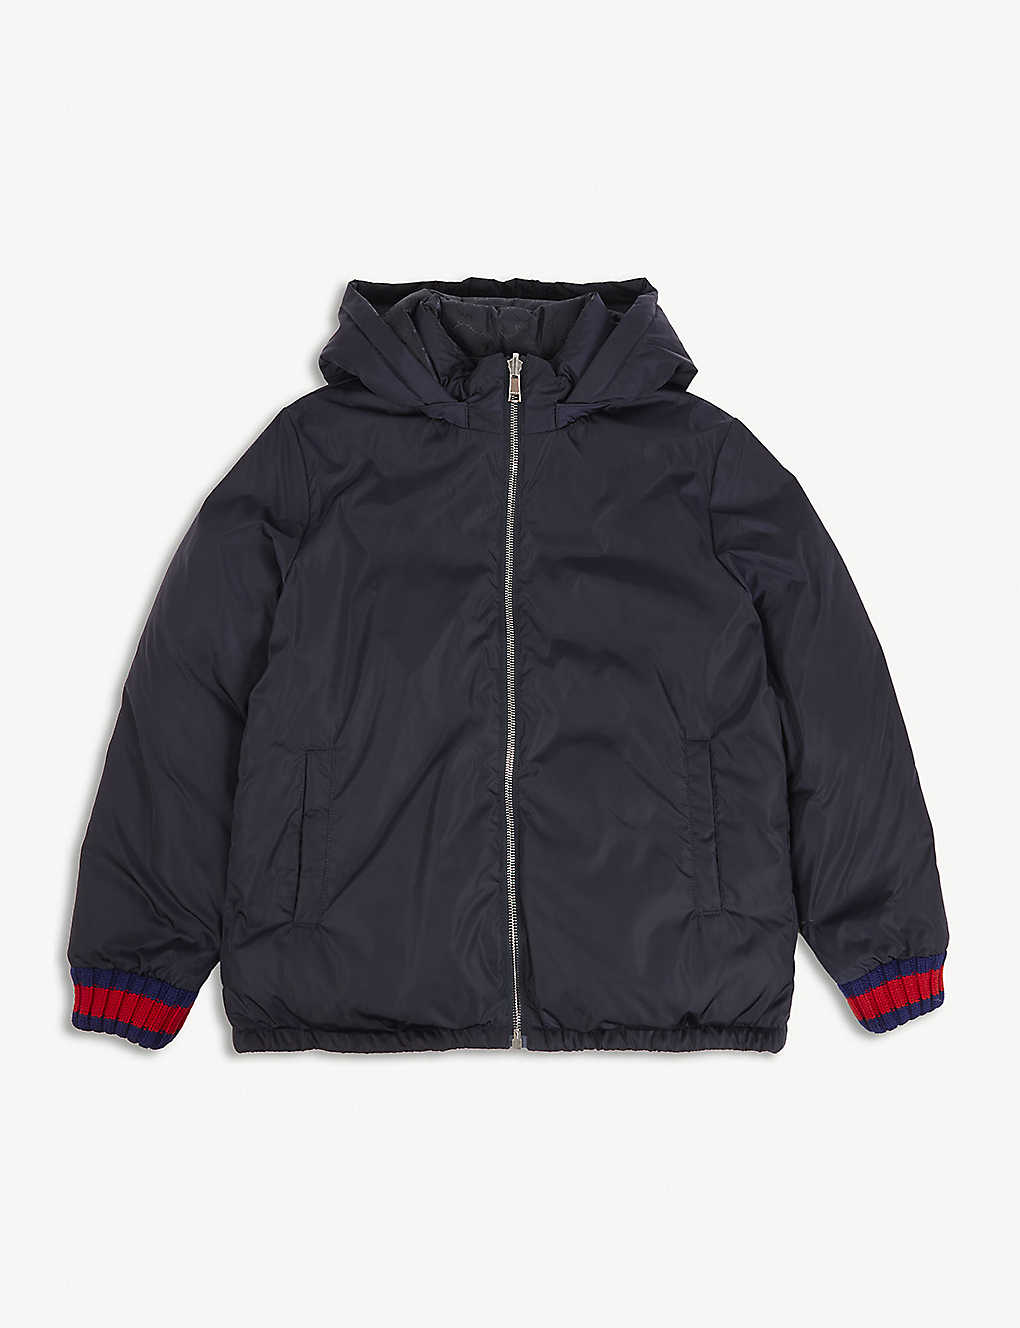 8efca0809 GUCCI - Reversible 'GG' jacquard quilted jacket 4-12 years ...